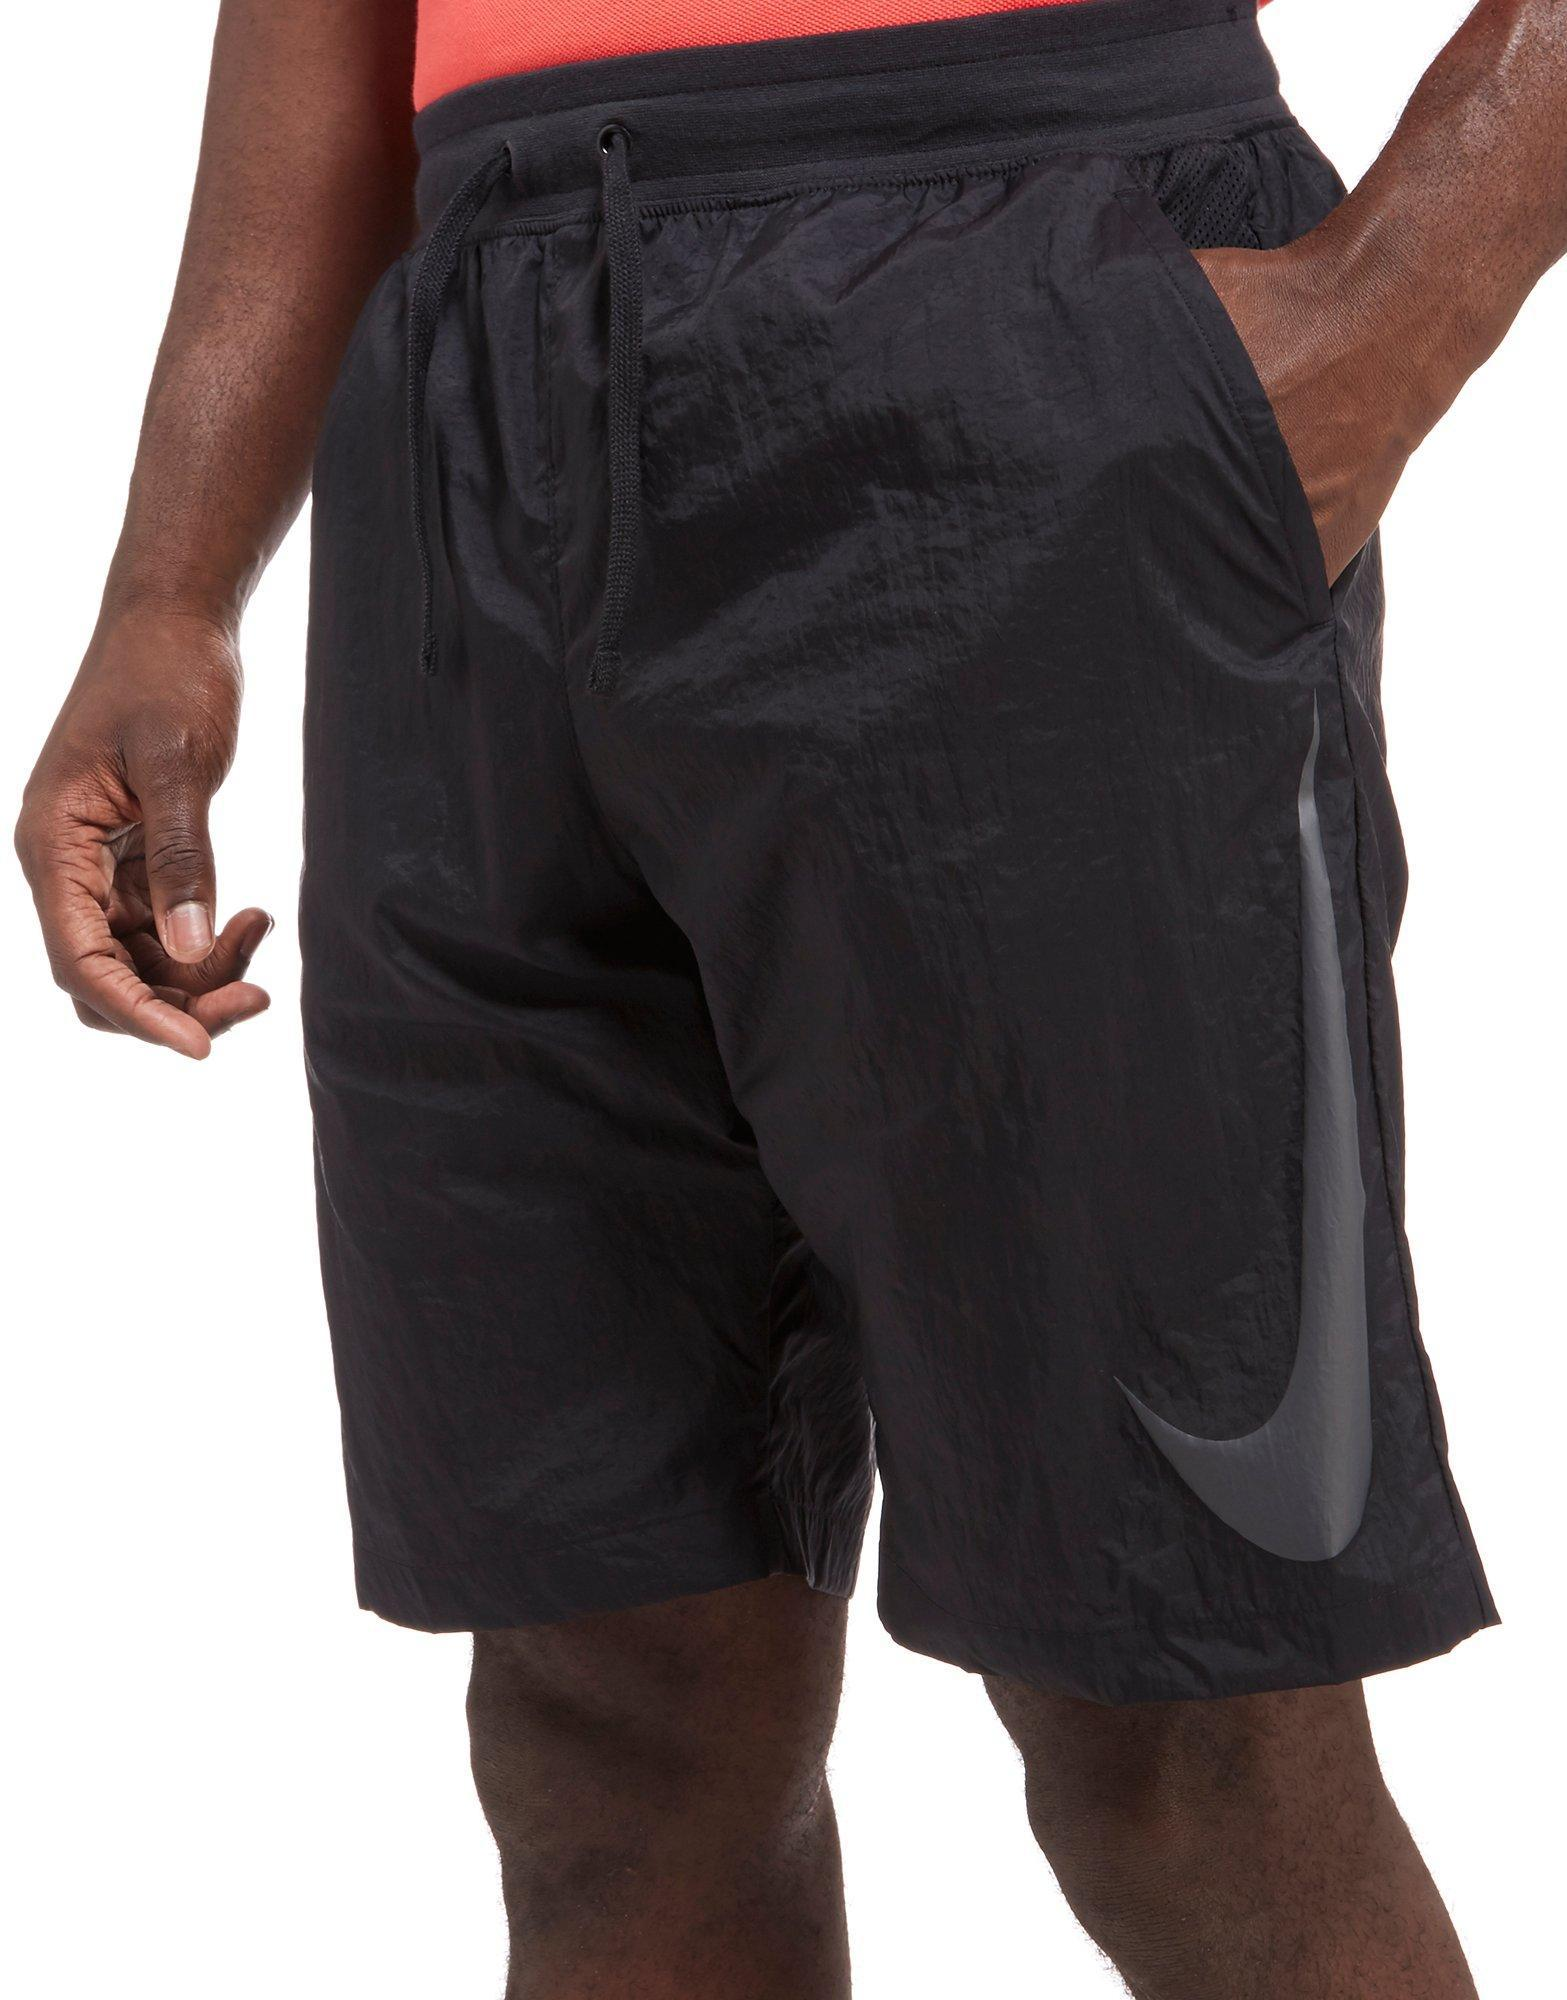 Lyst - Nike Woven Hybrid Shorts in Black for Men 585a4836f